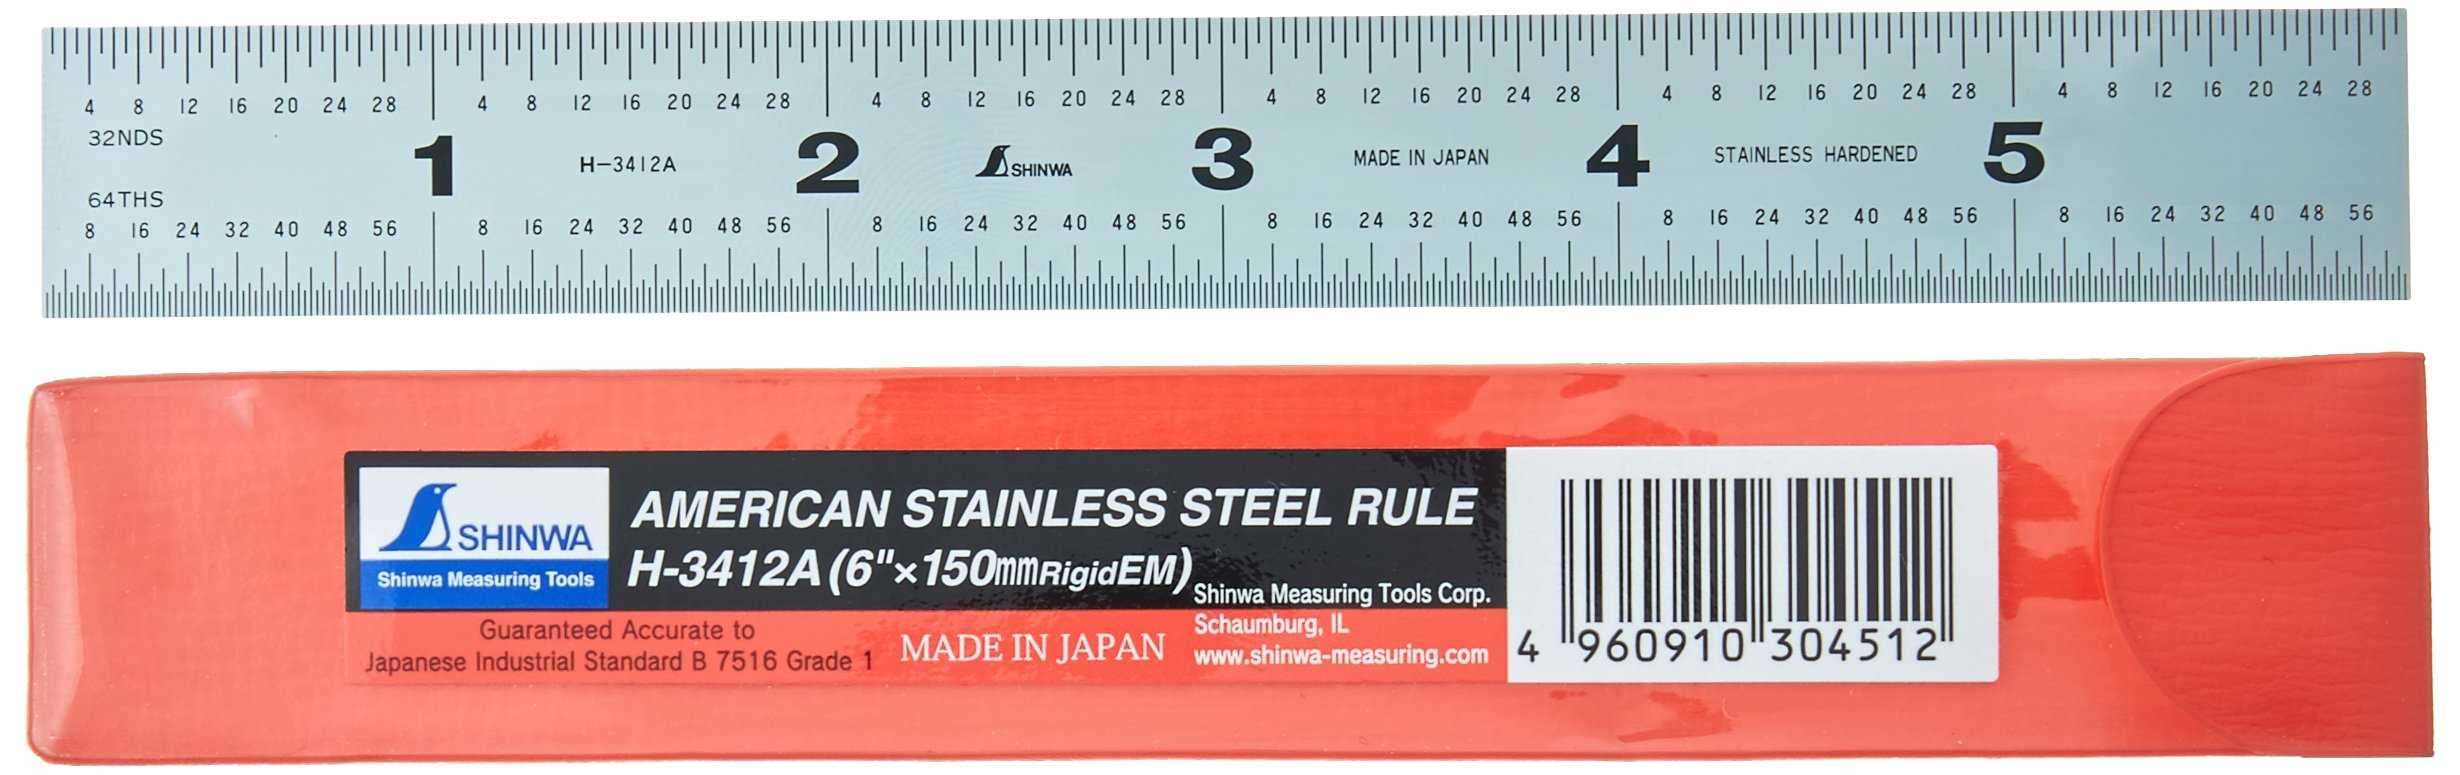 Shinwa H-3412A 6'' 150 mm Rigid English Metric Zero Glare Satin Chrome Stainless Steel E/M Machinist Engineer Ruler/Rule with Graduations in 1/64, 1/32, mm and .5 mm